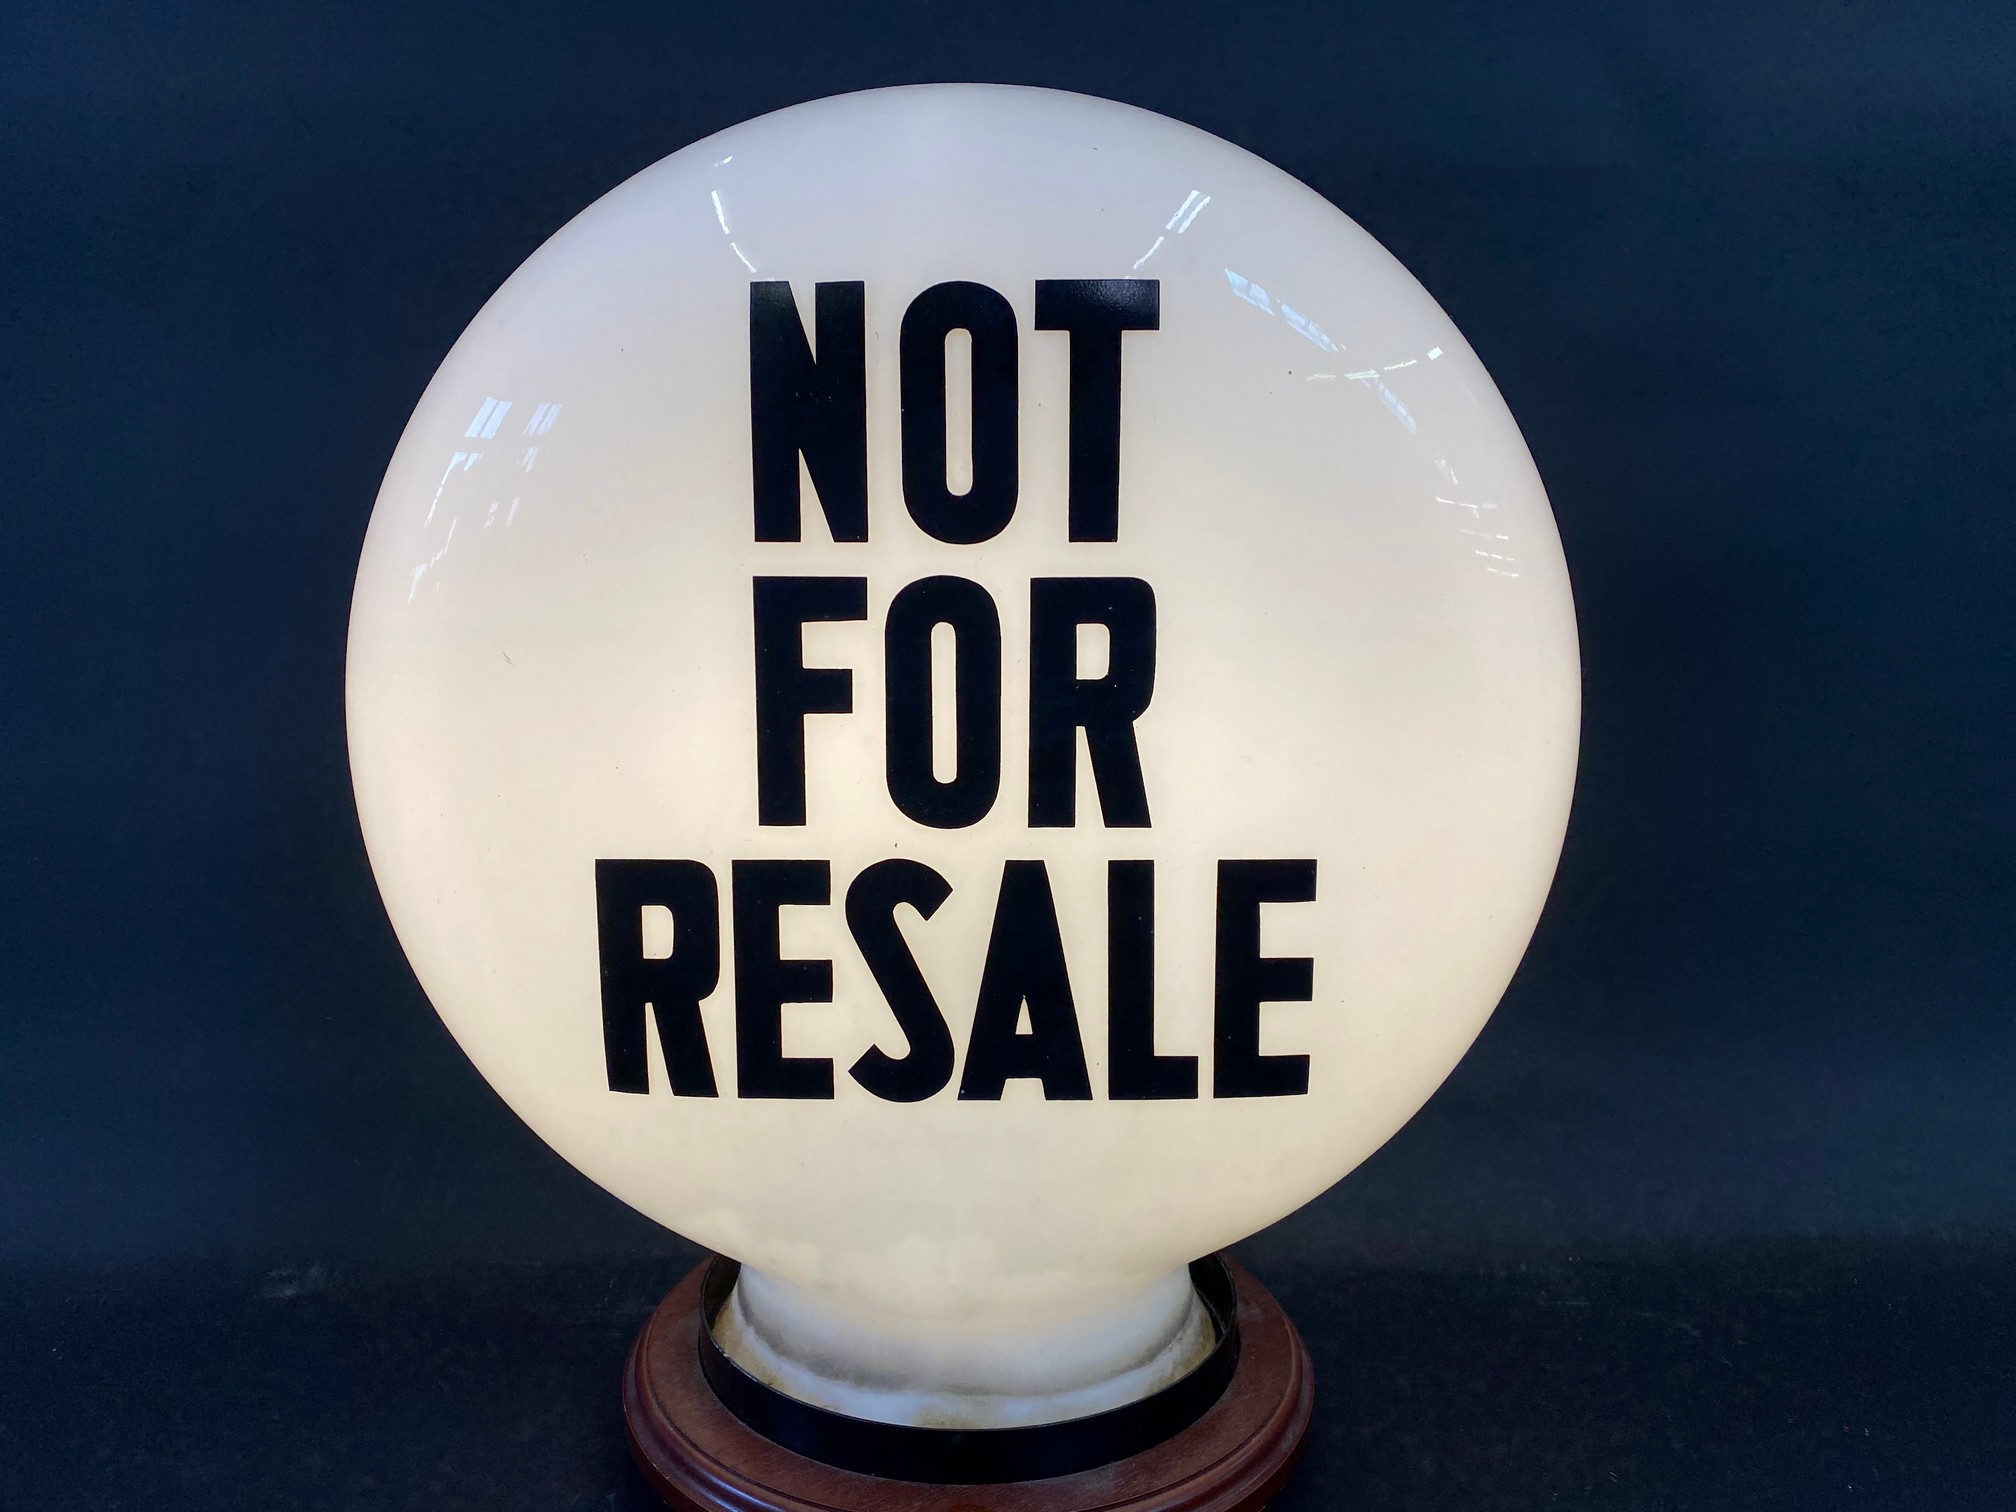 A 'Not For Resale' glass petrol pump globe by Hailware, in good condition, fully stamped 'Property